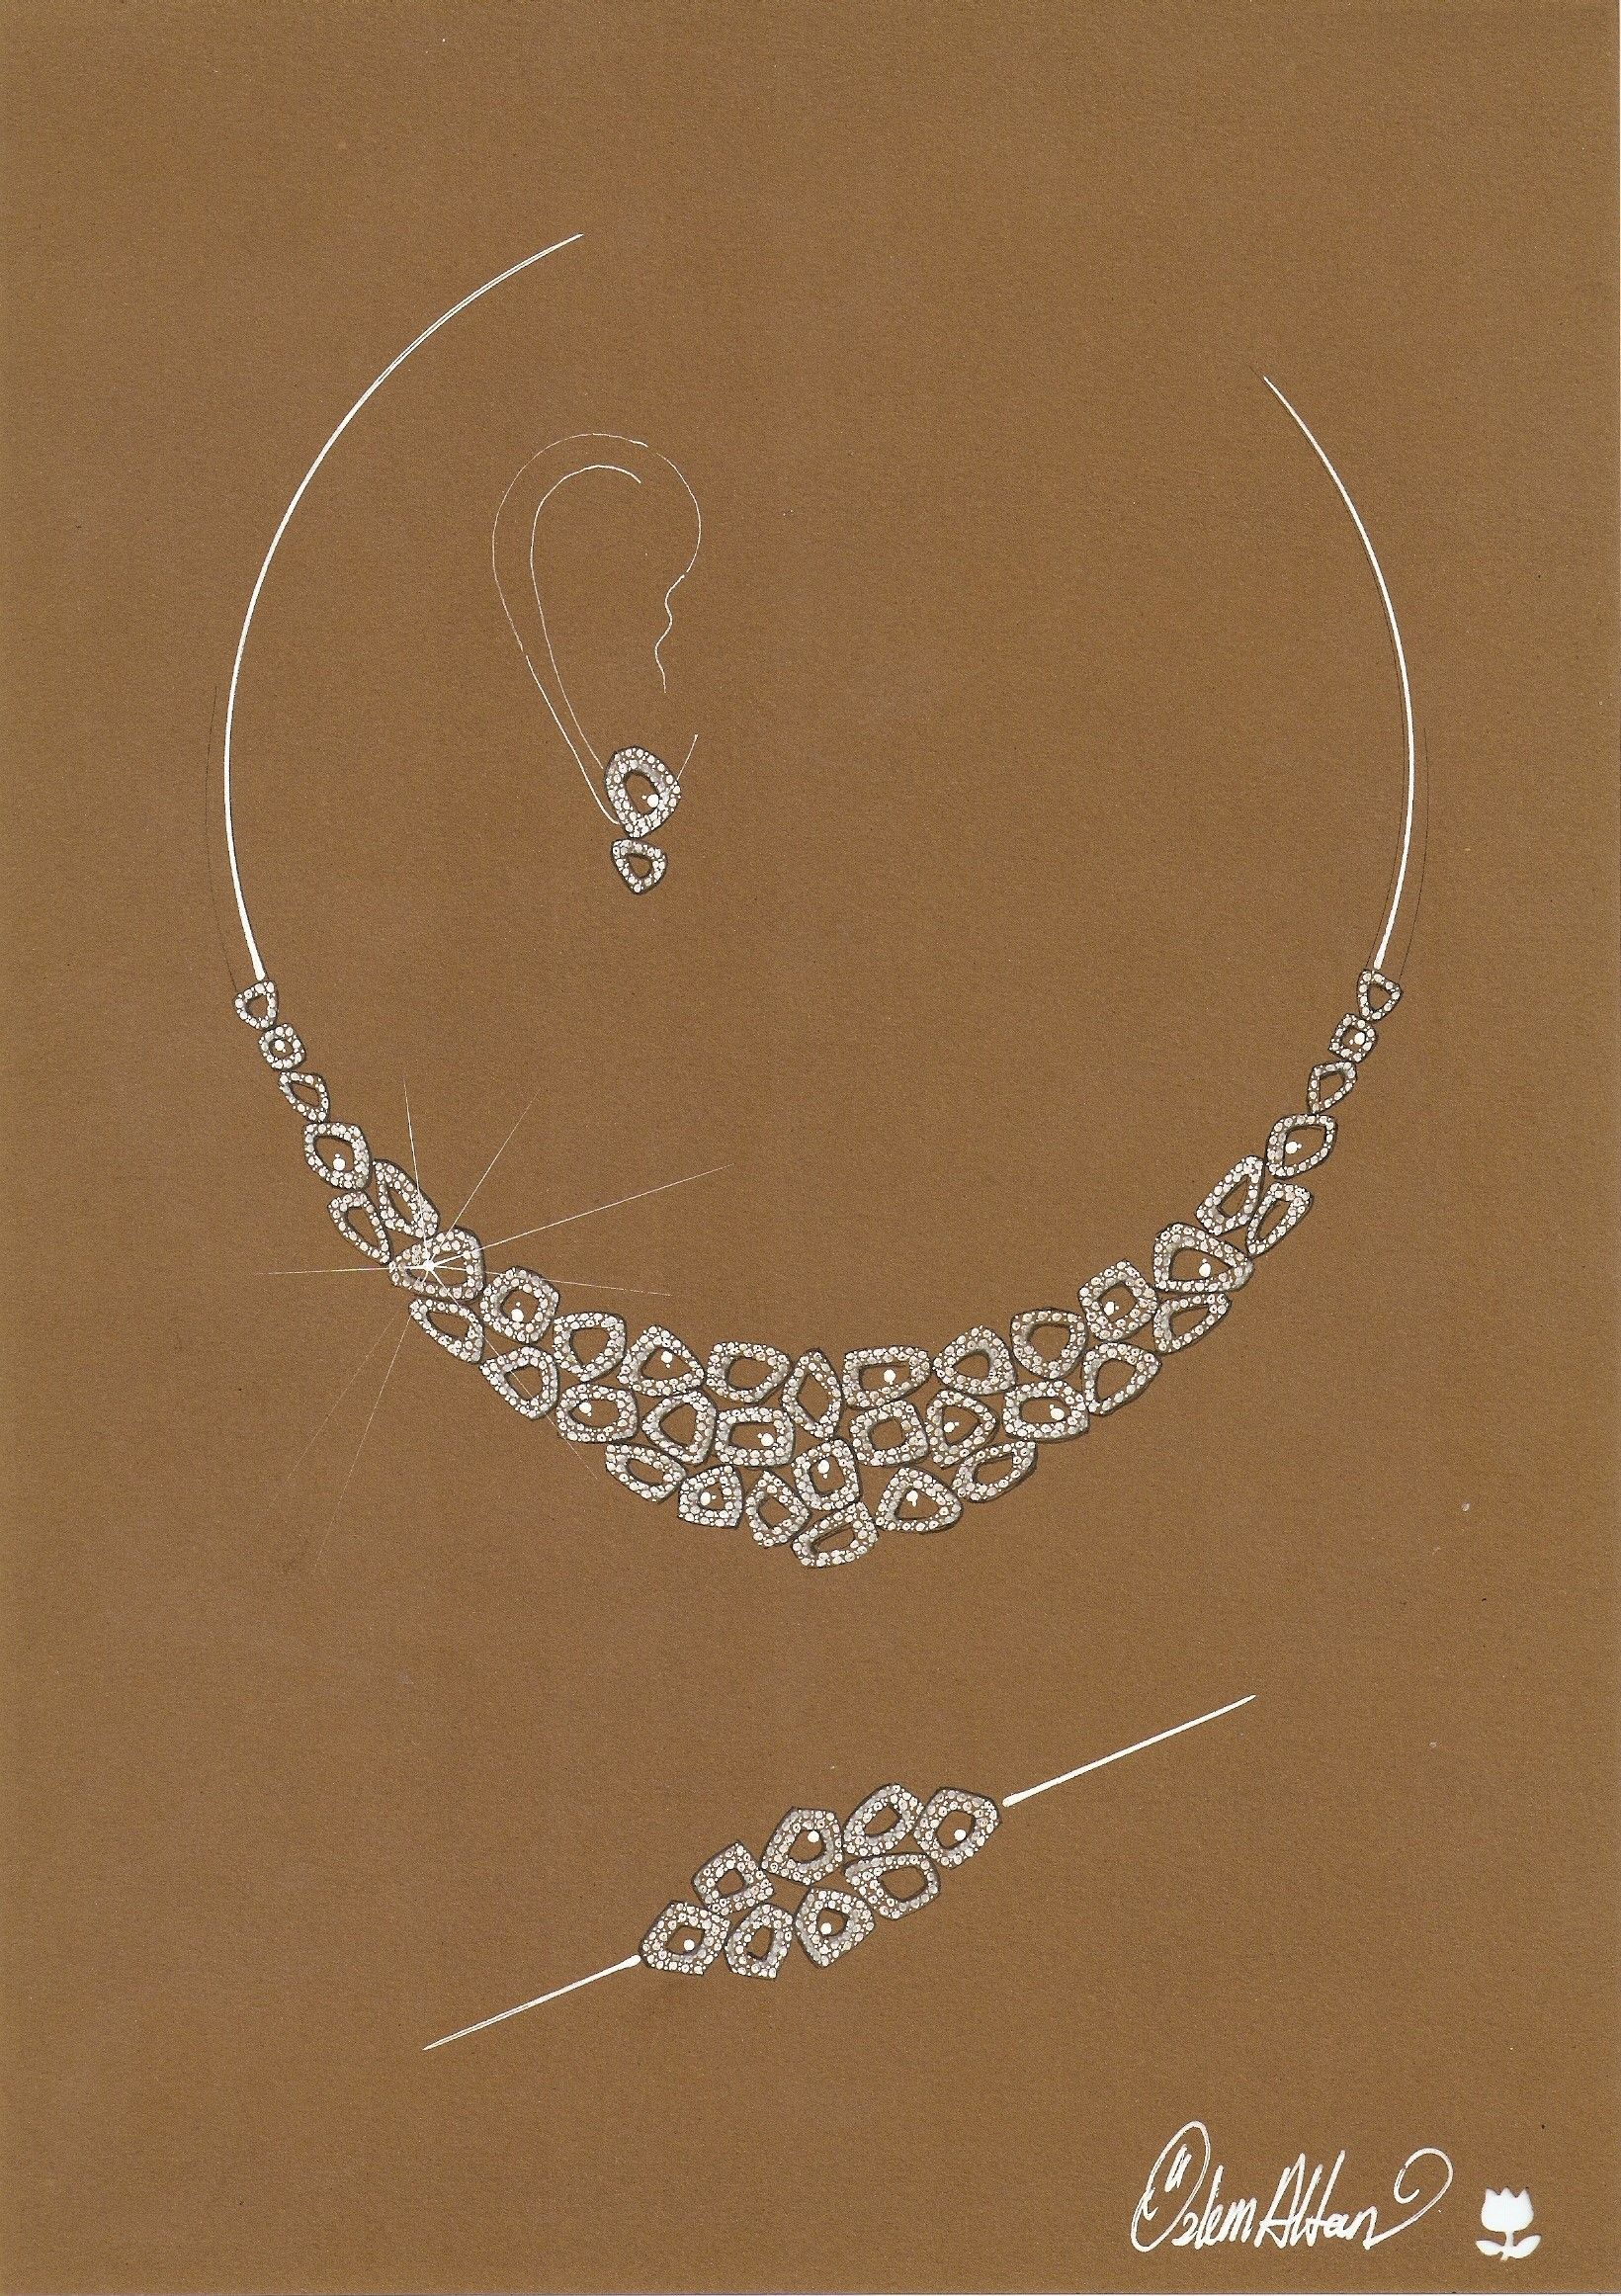 Pin by sunita adukia on necklace pinterest jewelry jewels and